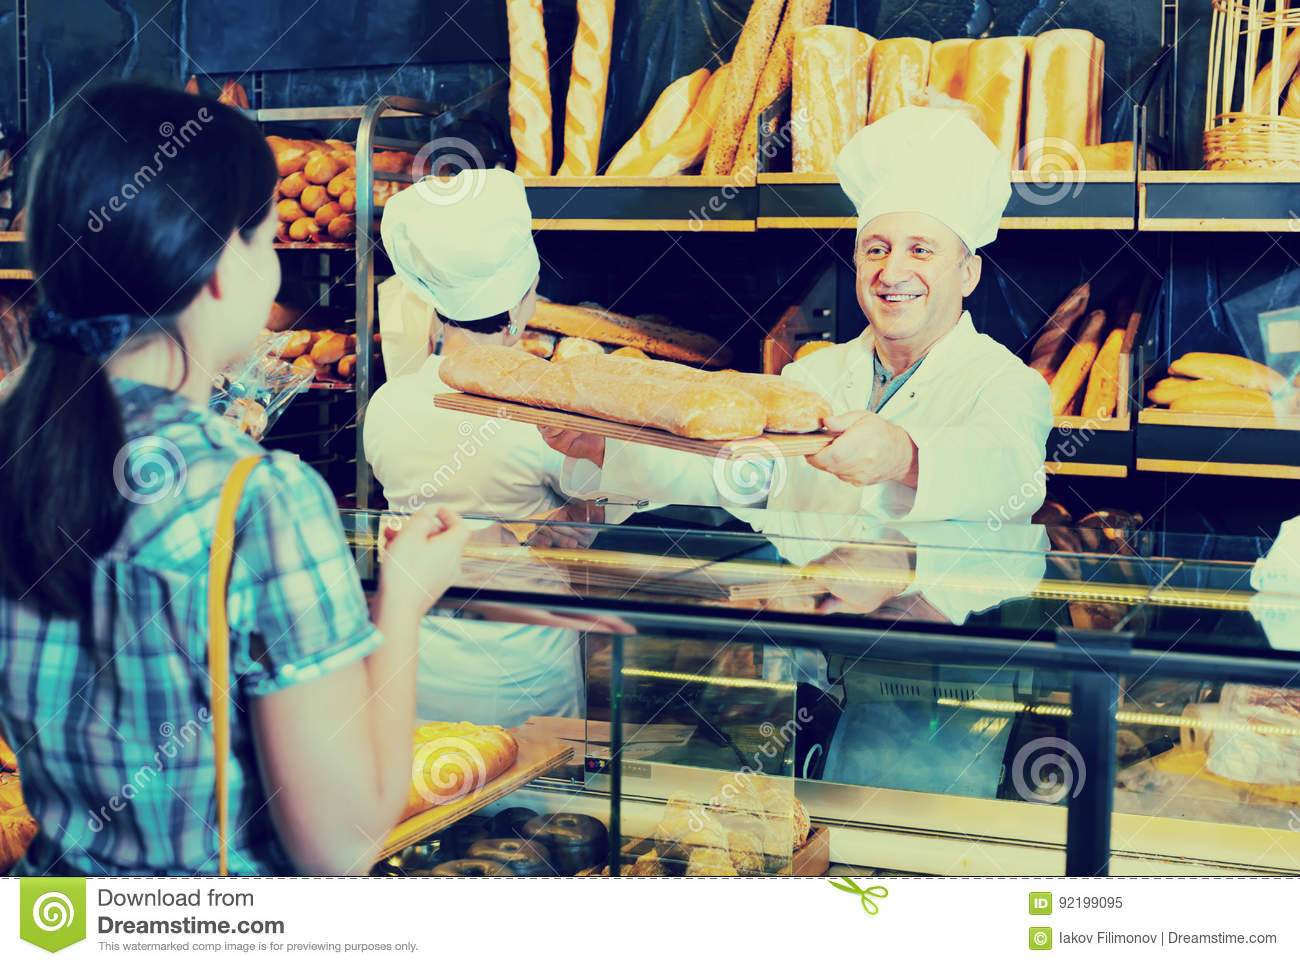 Female Customer Buying Bread In Bakery Stock Image - Image of people